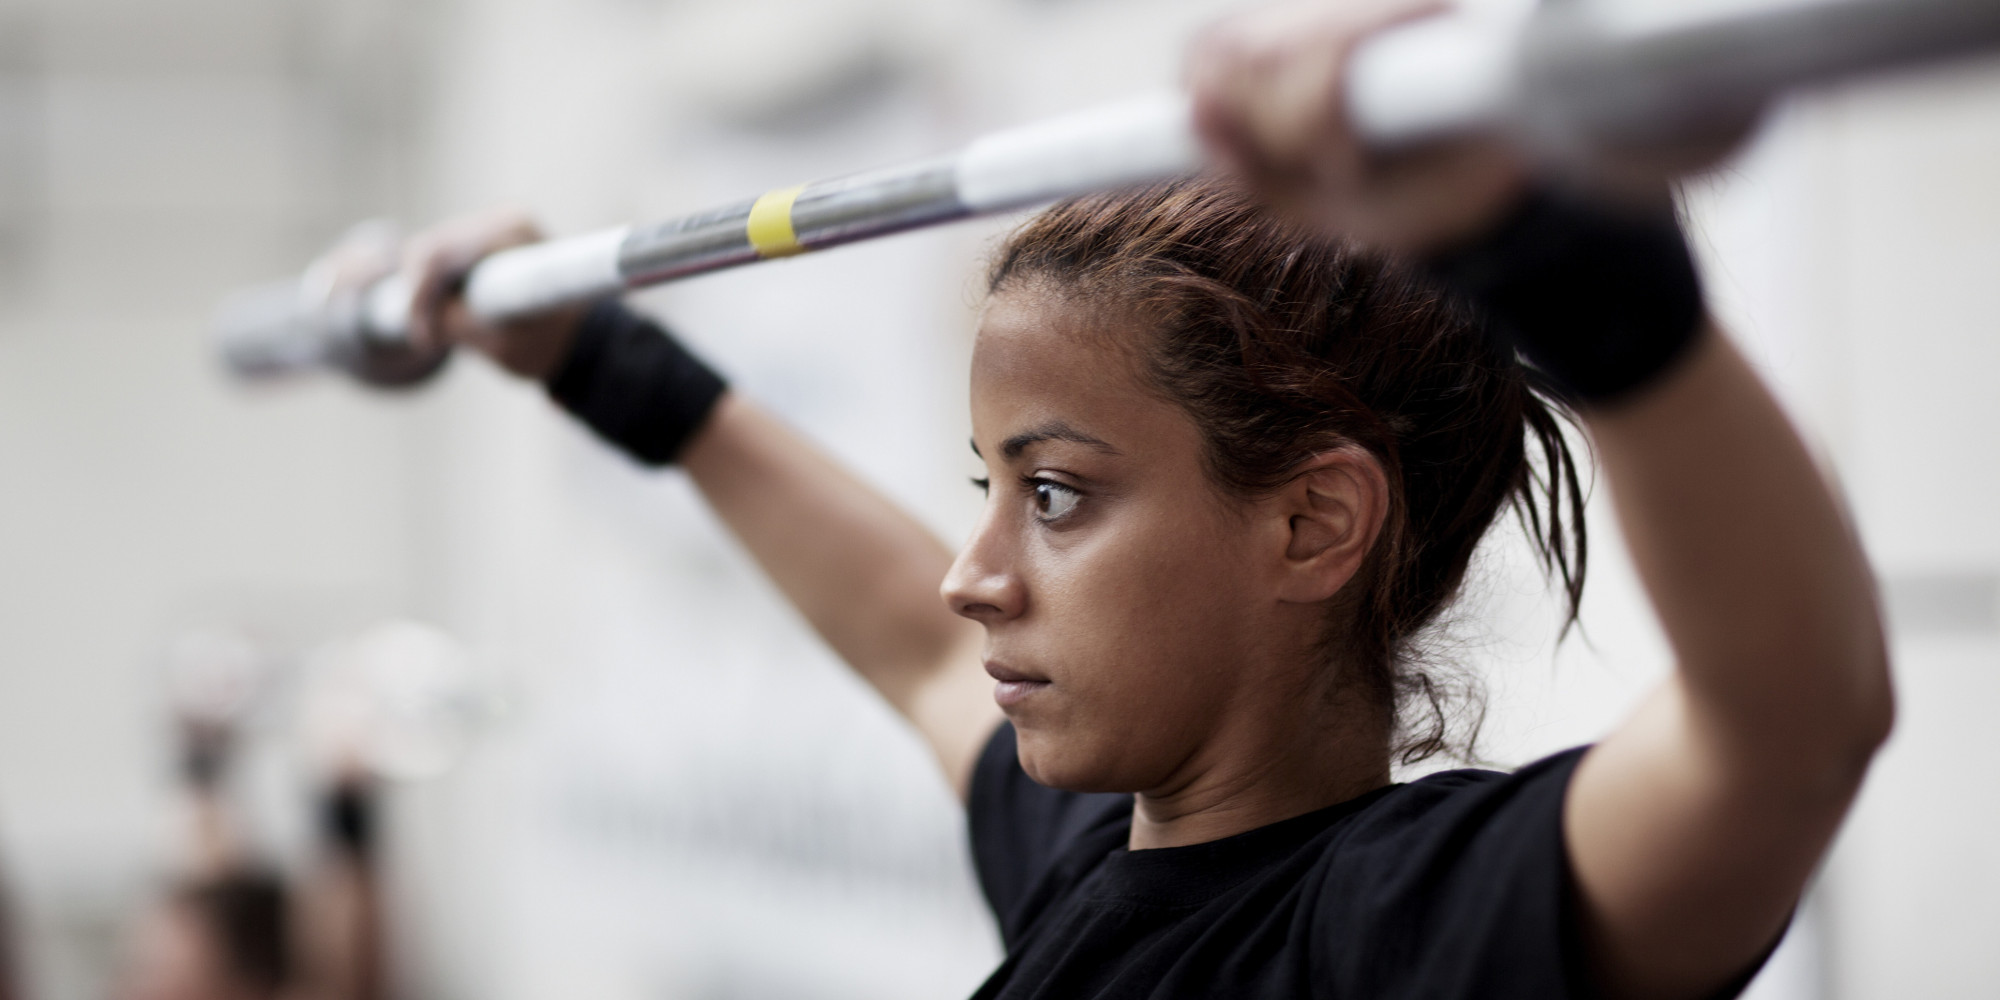 Top 10 Most Effective Fitness Trends to Try in 2015